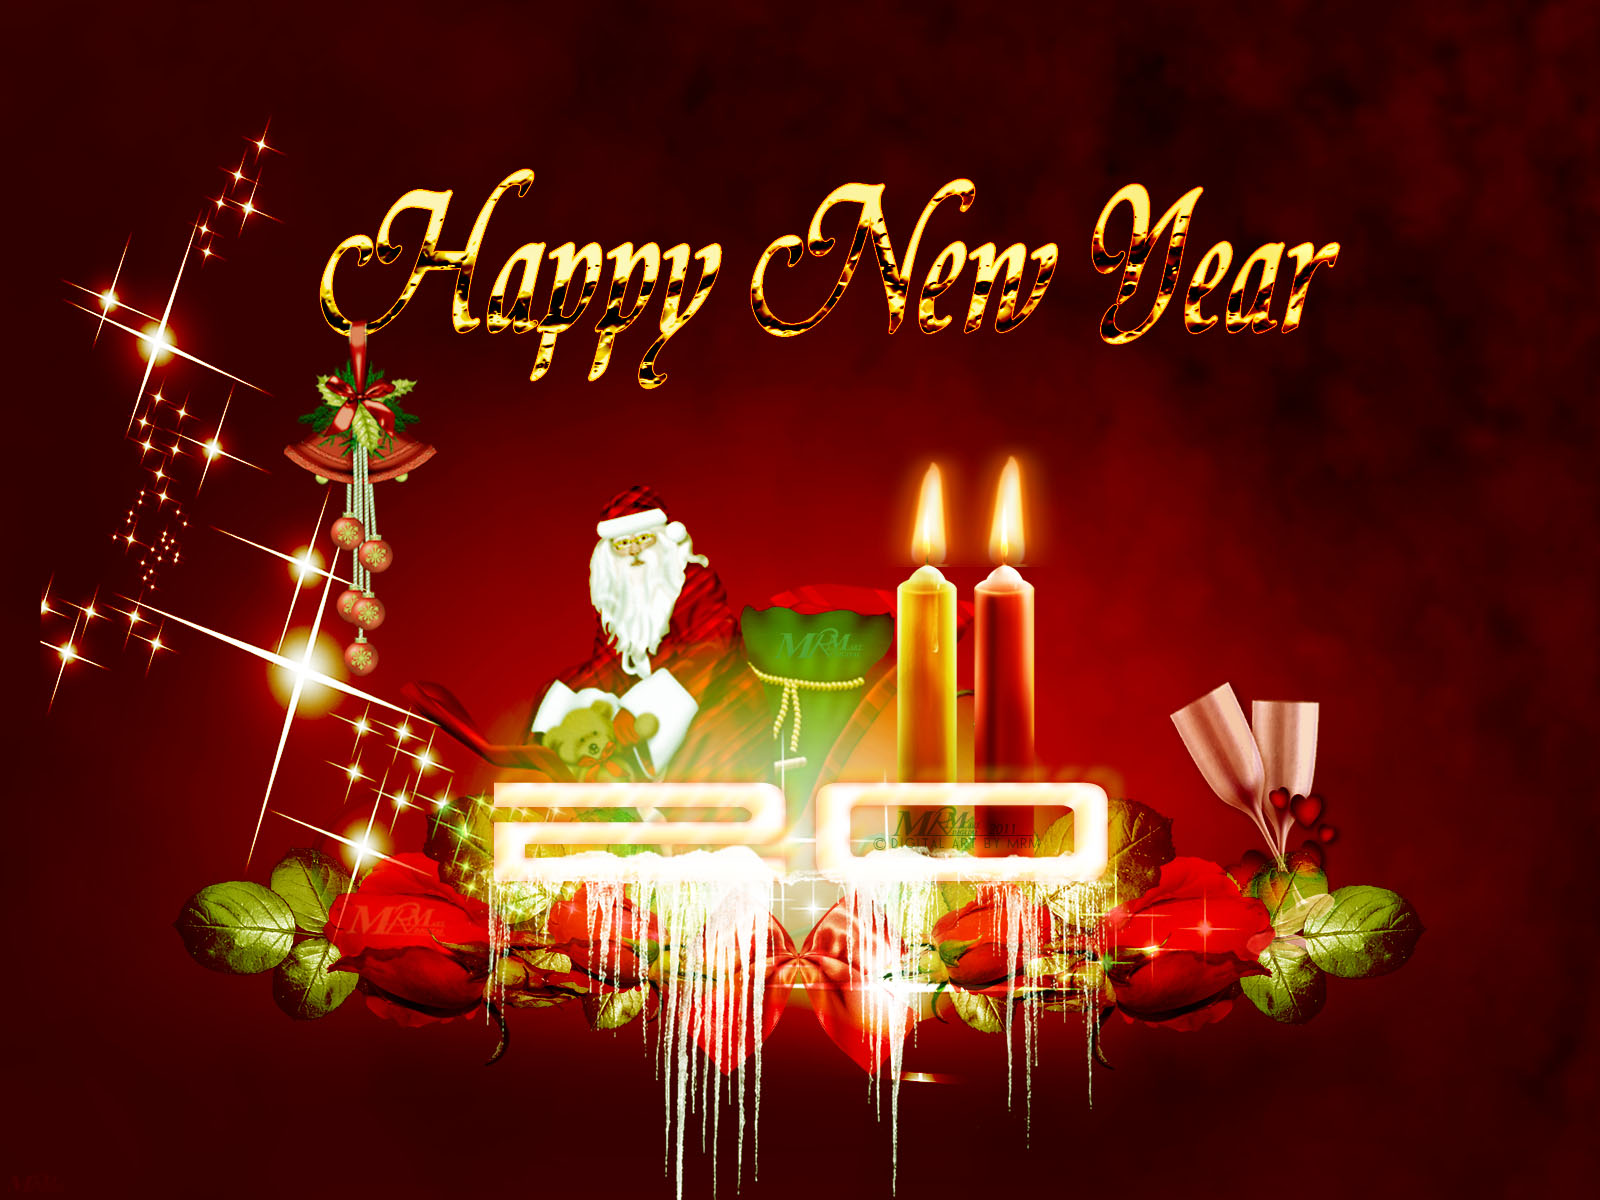 New Year Wallpapers 2011 New Year Pictures Happy New Year 2011. 1600 x 1200.Happy New Year Foto